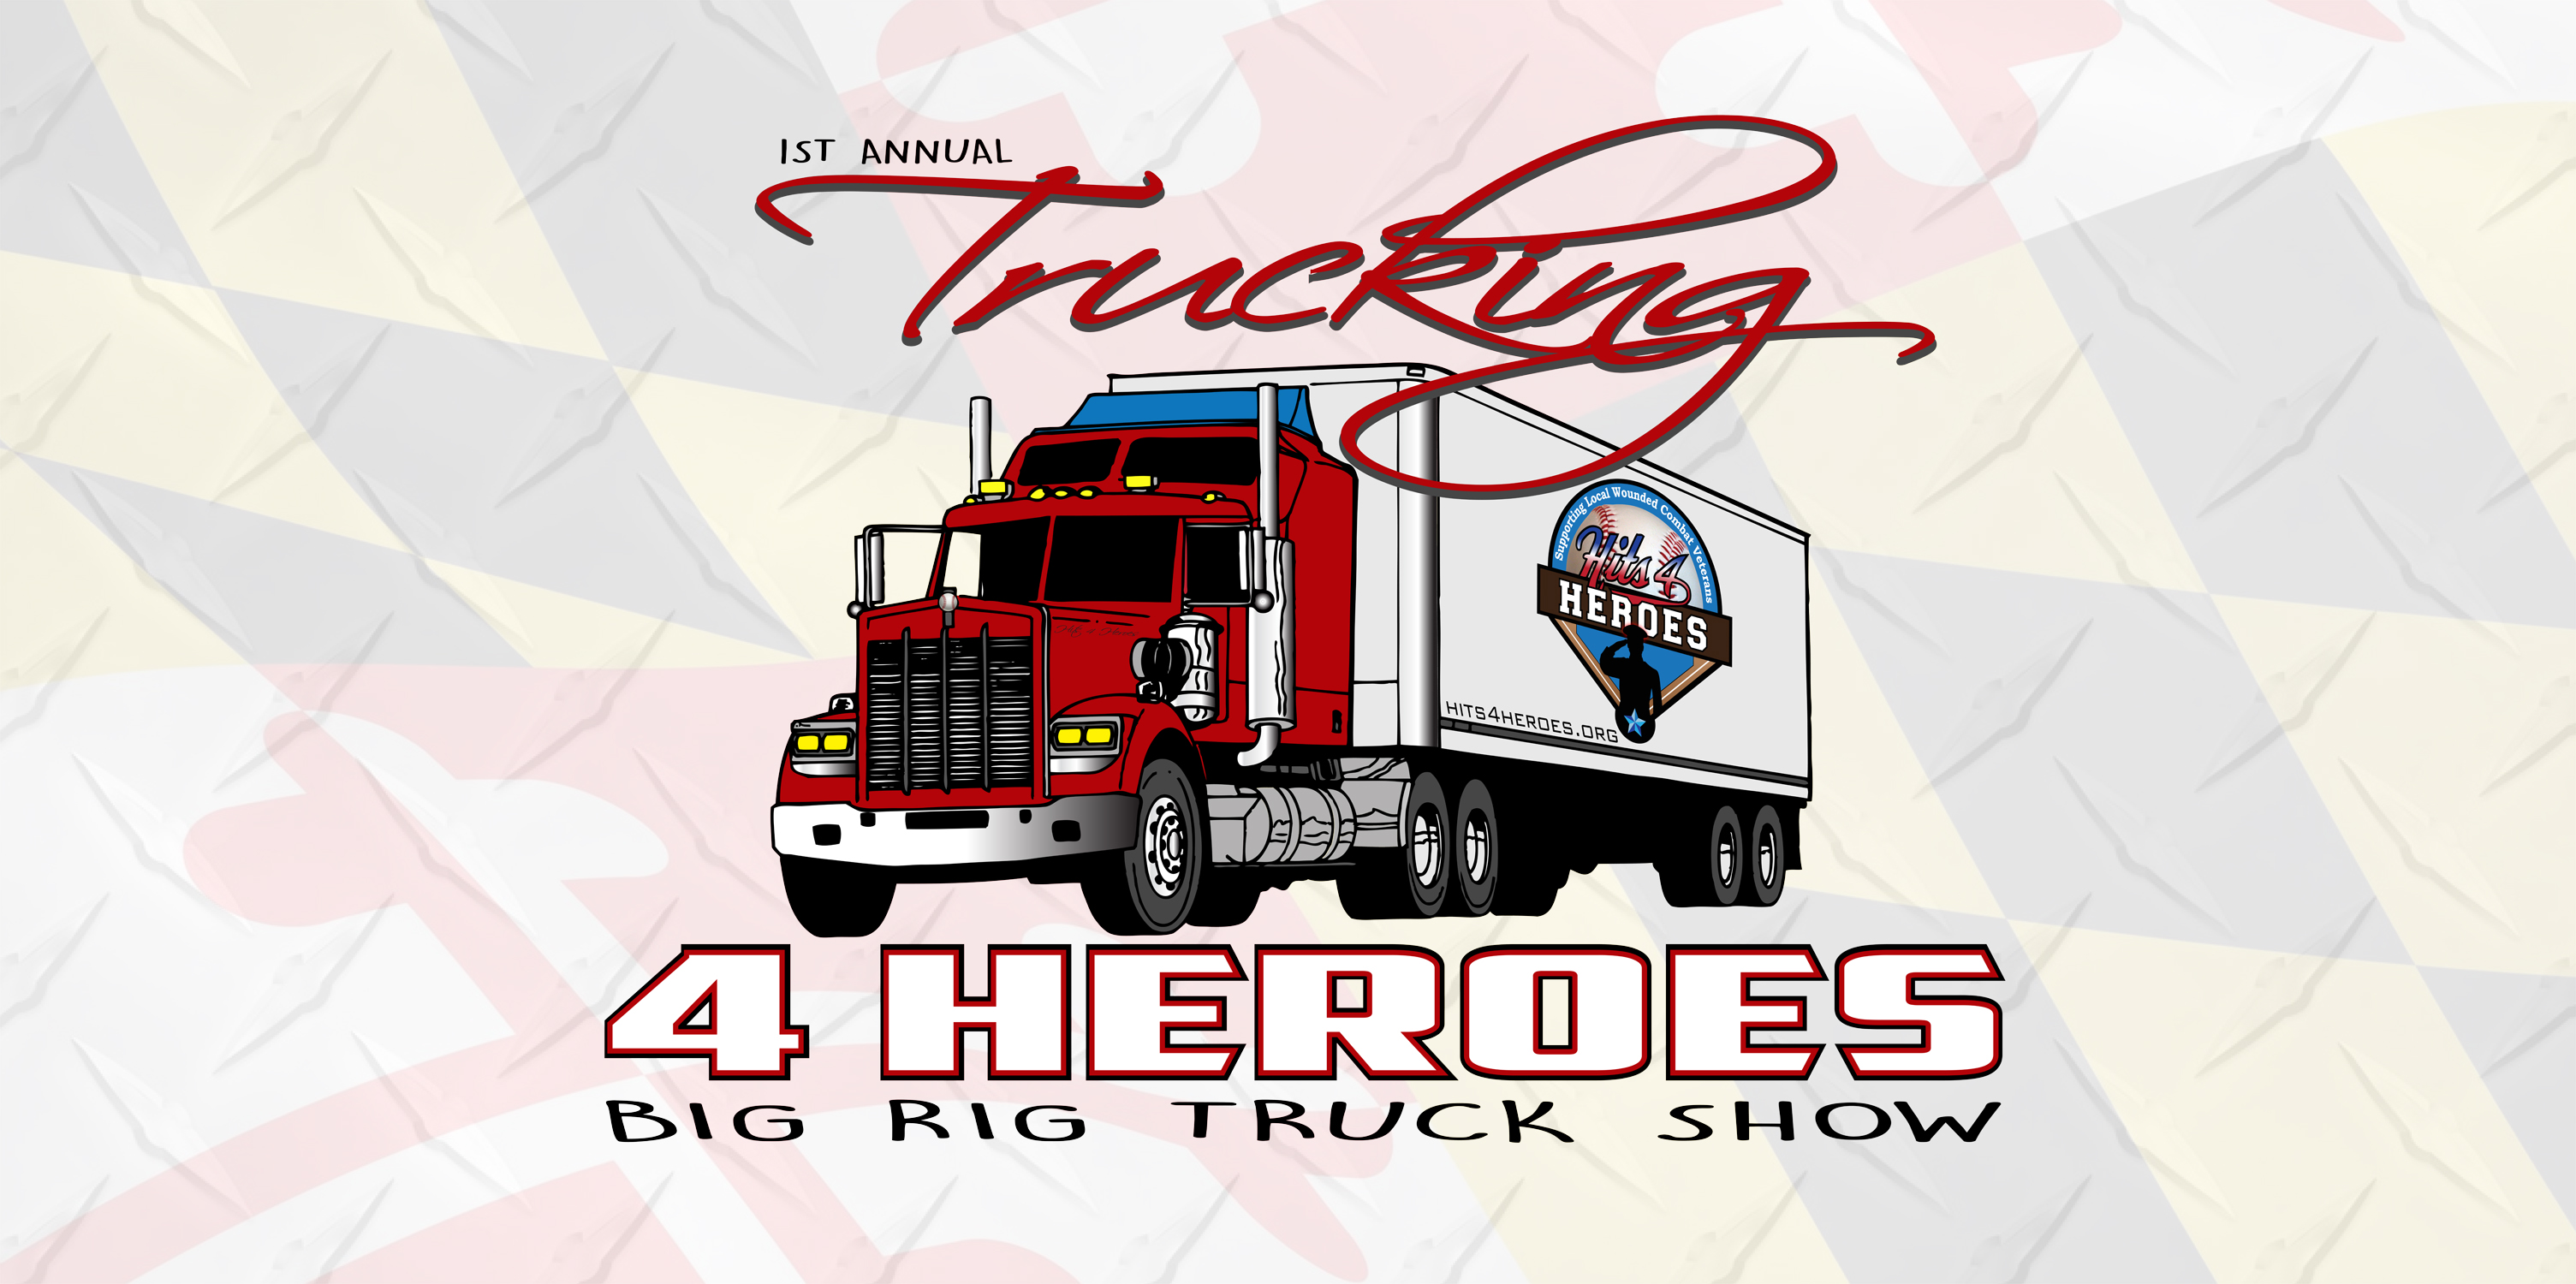 2017 trucking 4 heroes facebook event